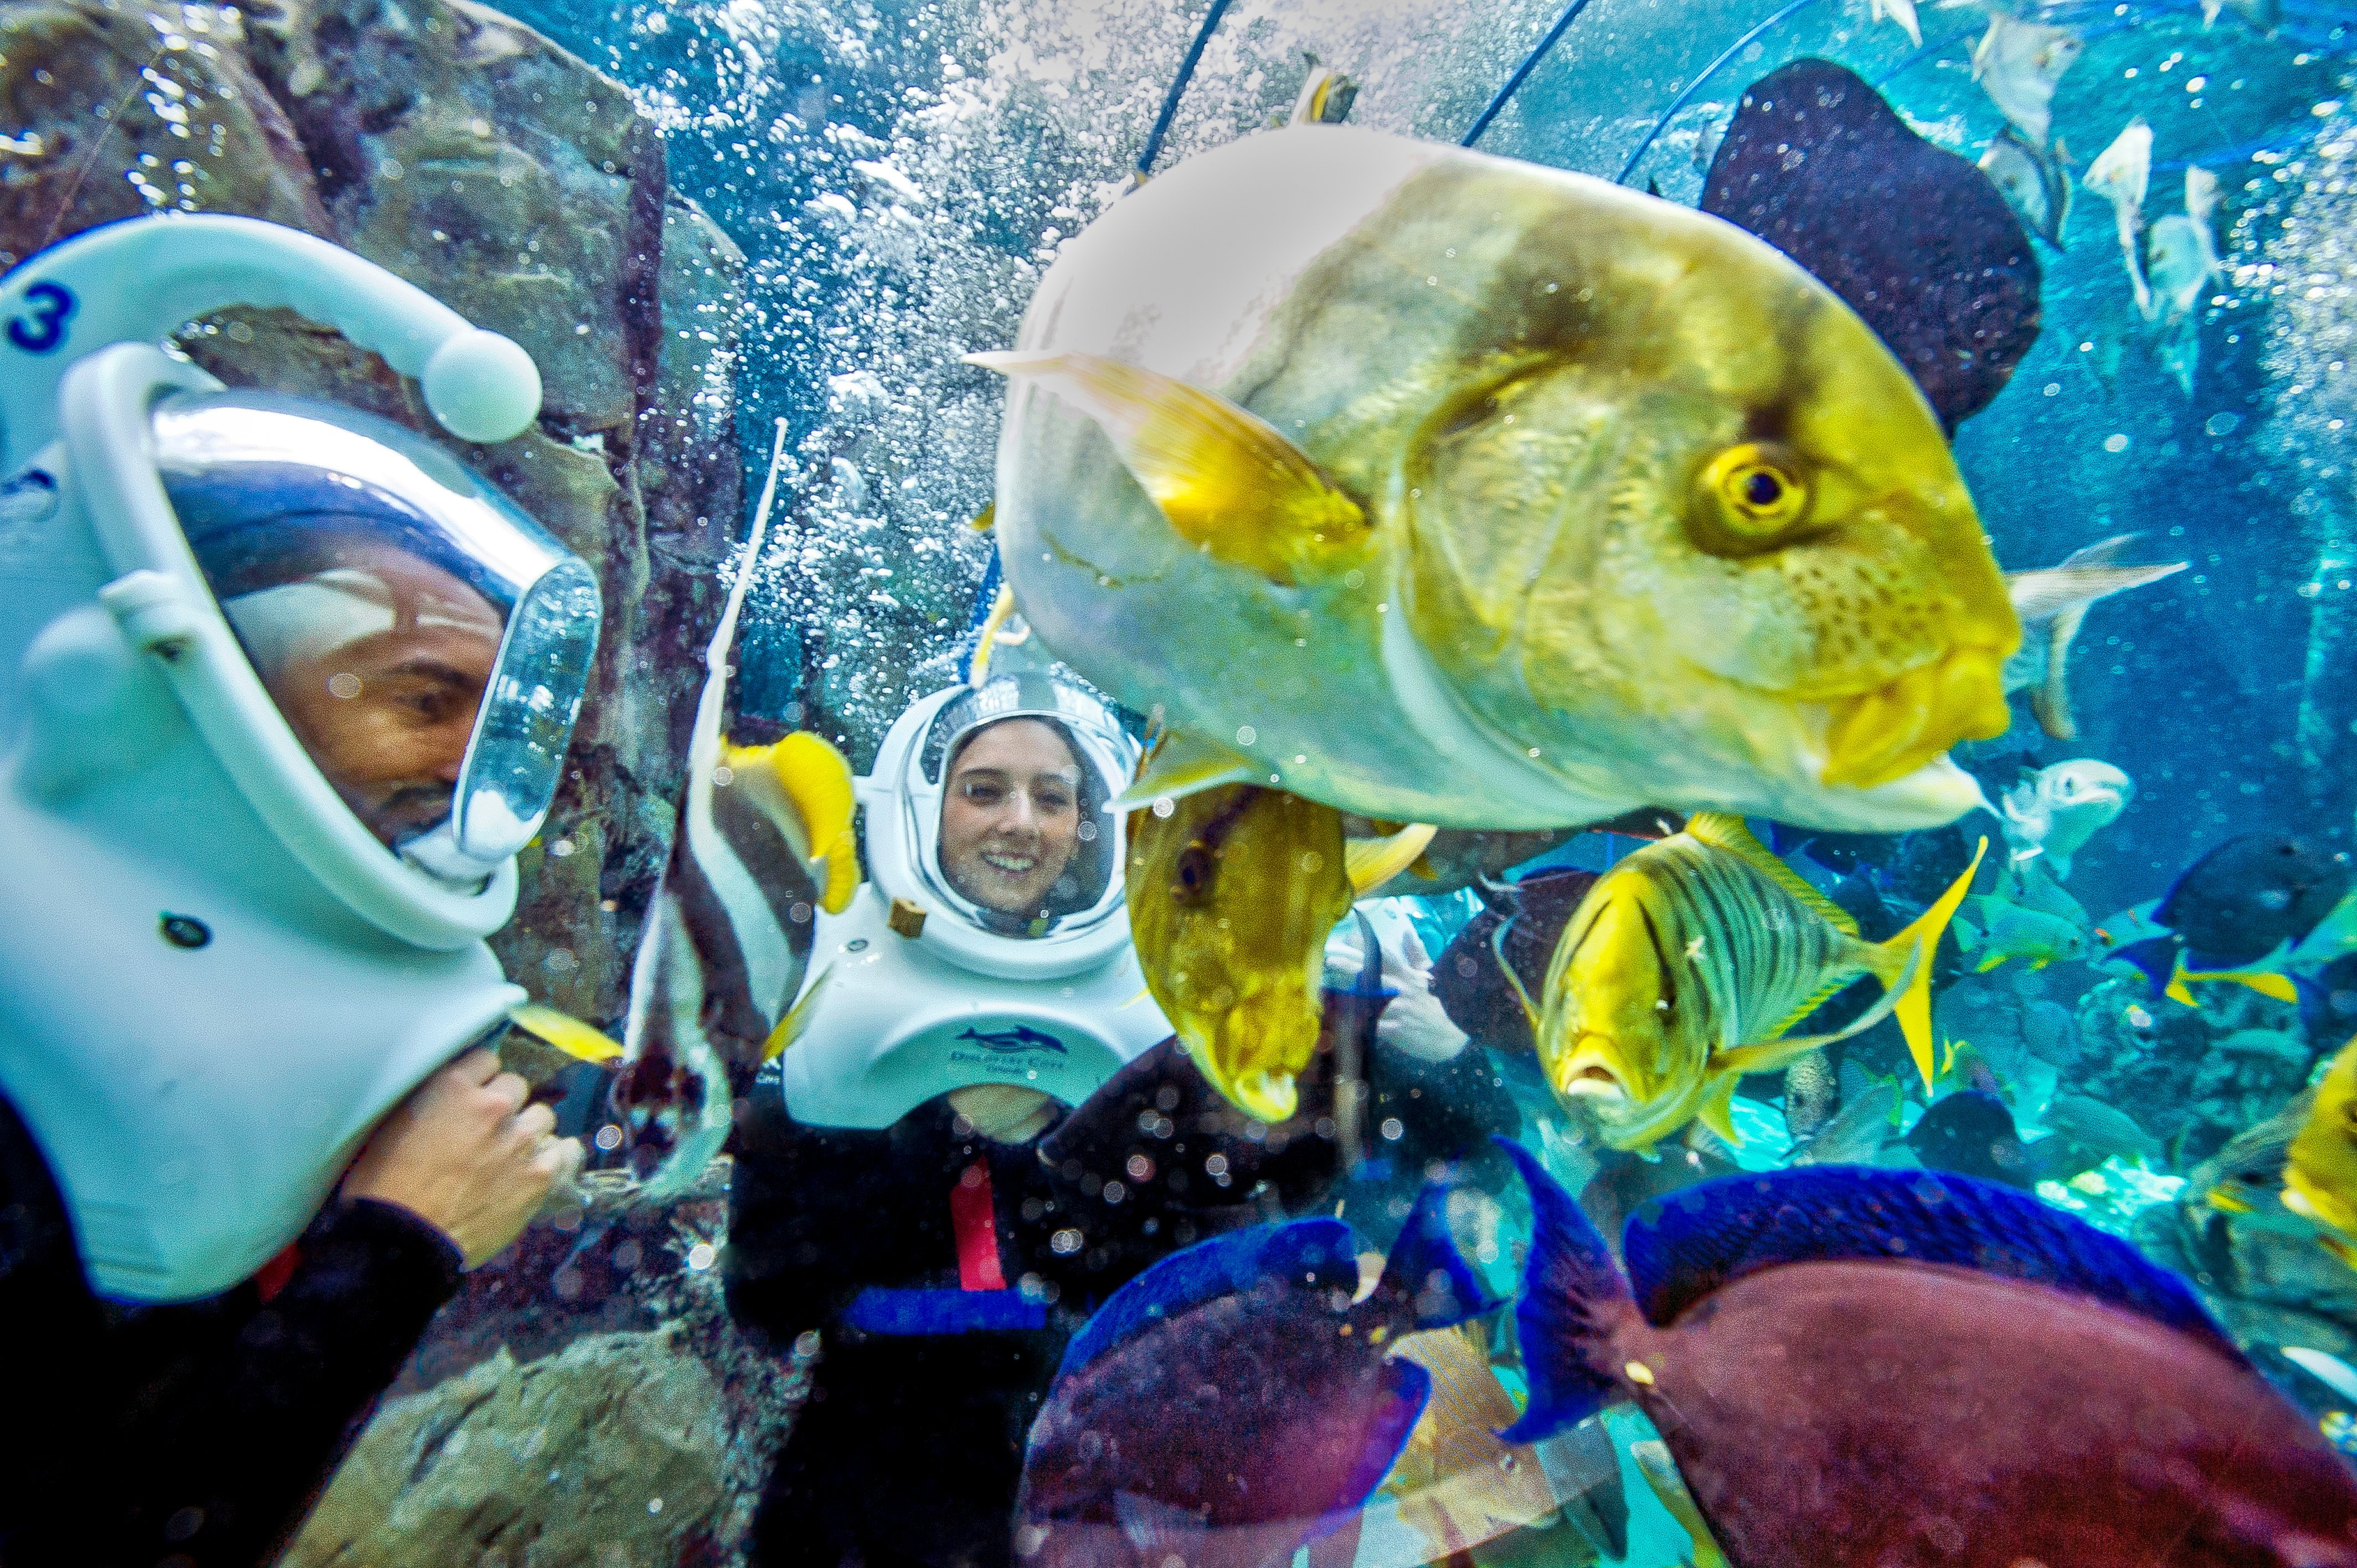 Guests with dive helmets look at fish underwater during the SeaVenture experience.